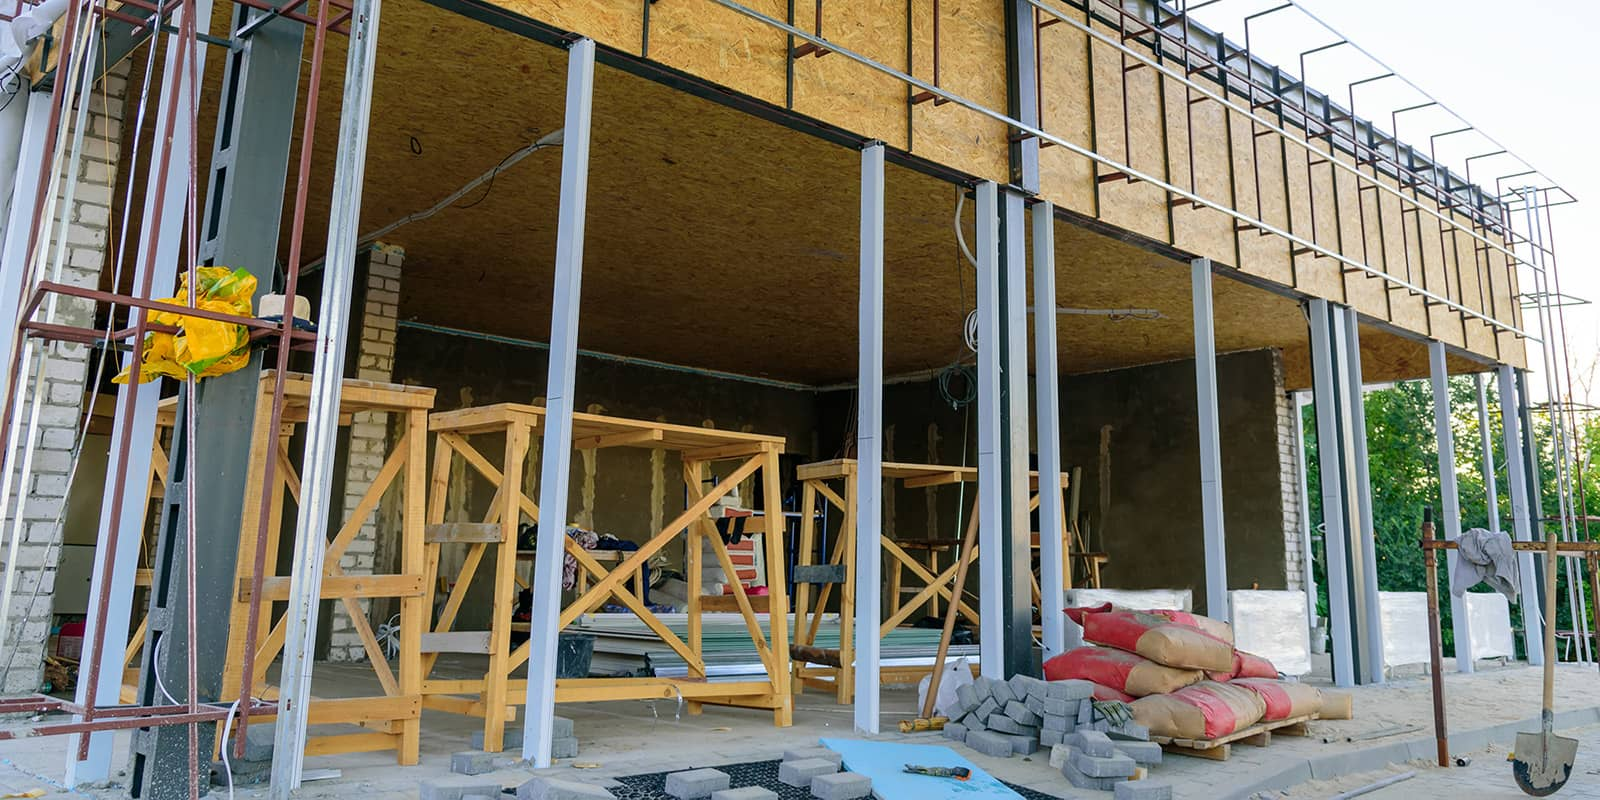 Grocery store being remodelled under construction